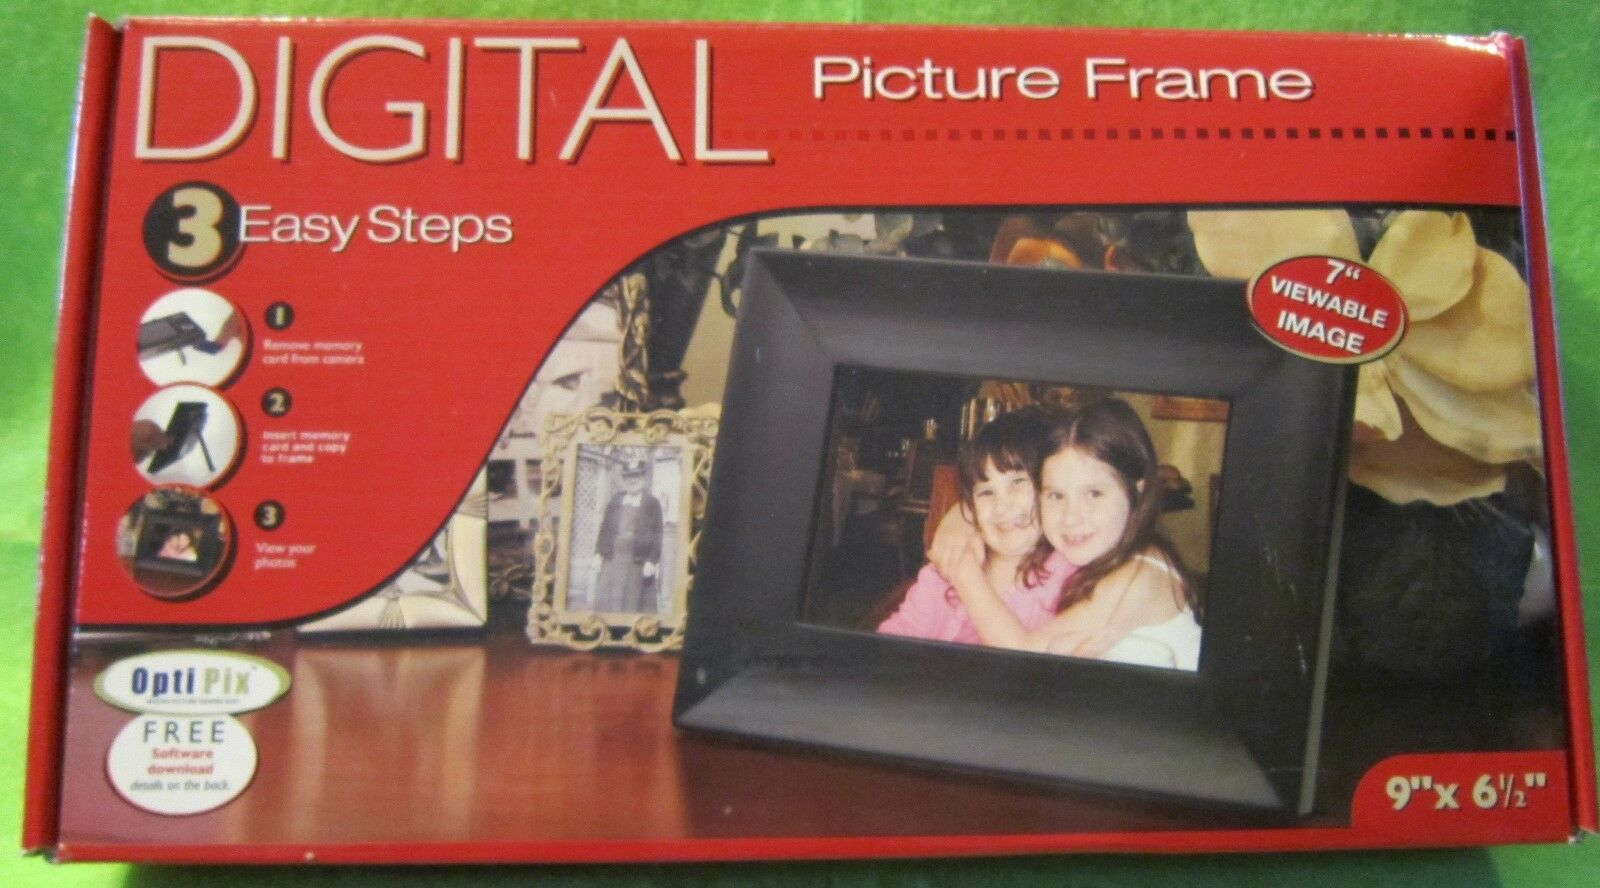 Sylvania digital photo frame troubleshooting image collections smartparts digital picture frame images craft decoration ideas sylvania digital photo frame troubleshooting gallery free smartparts jeuxipadfo Gallery